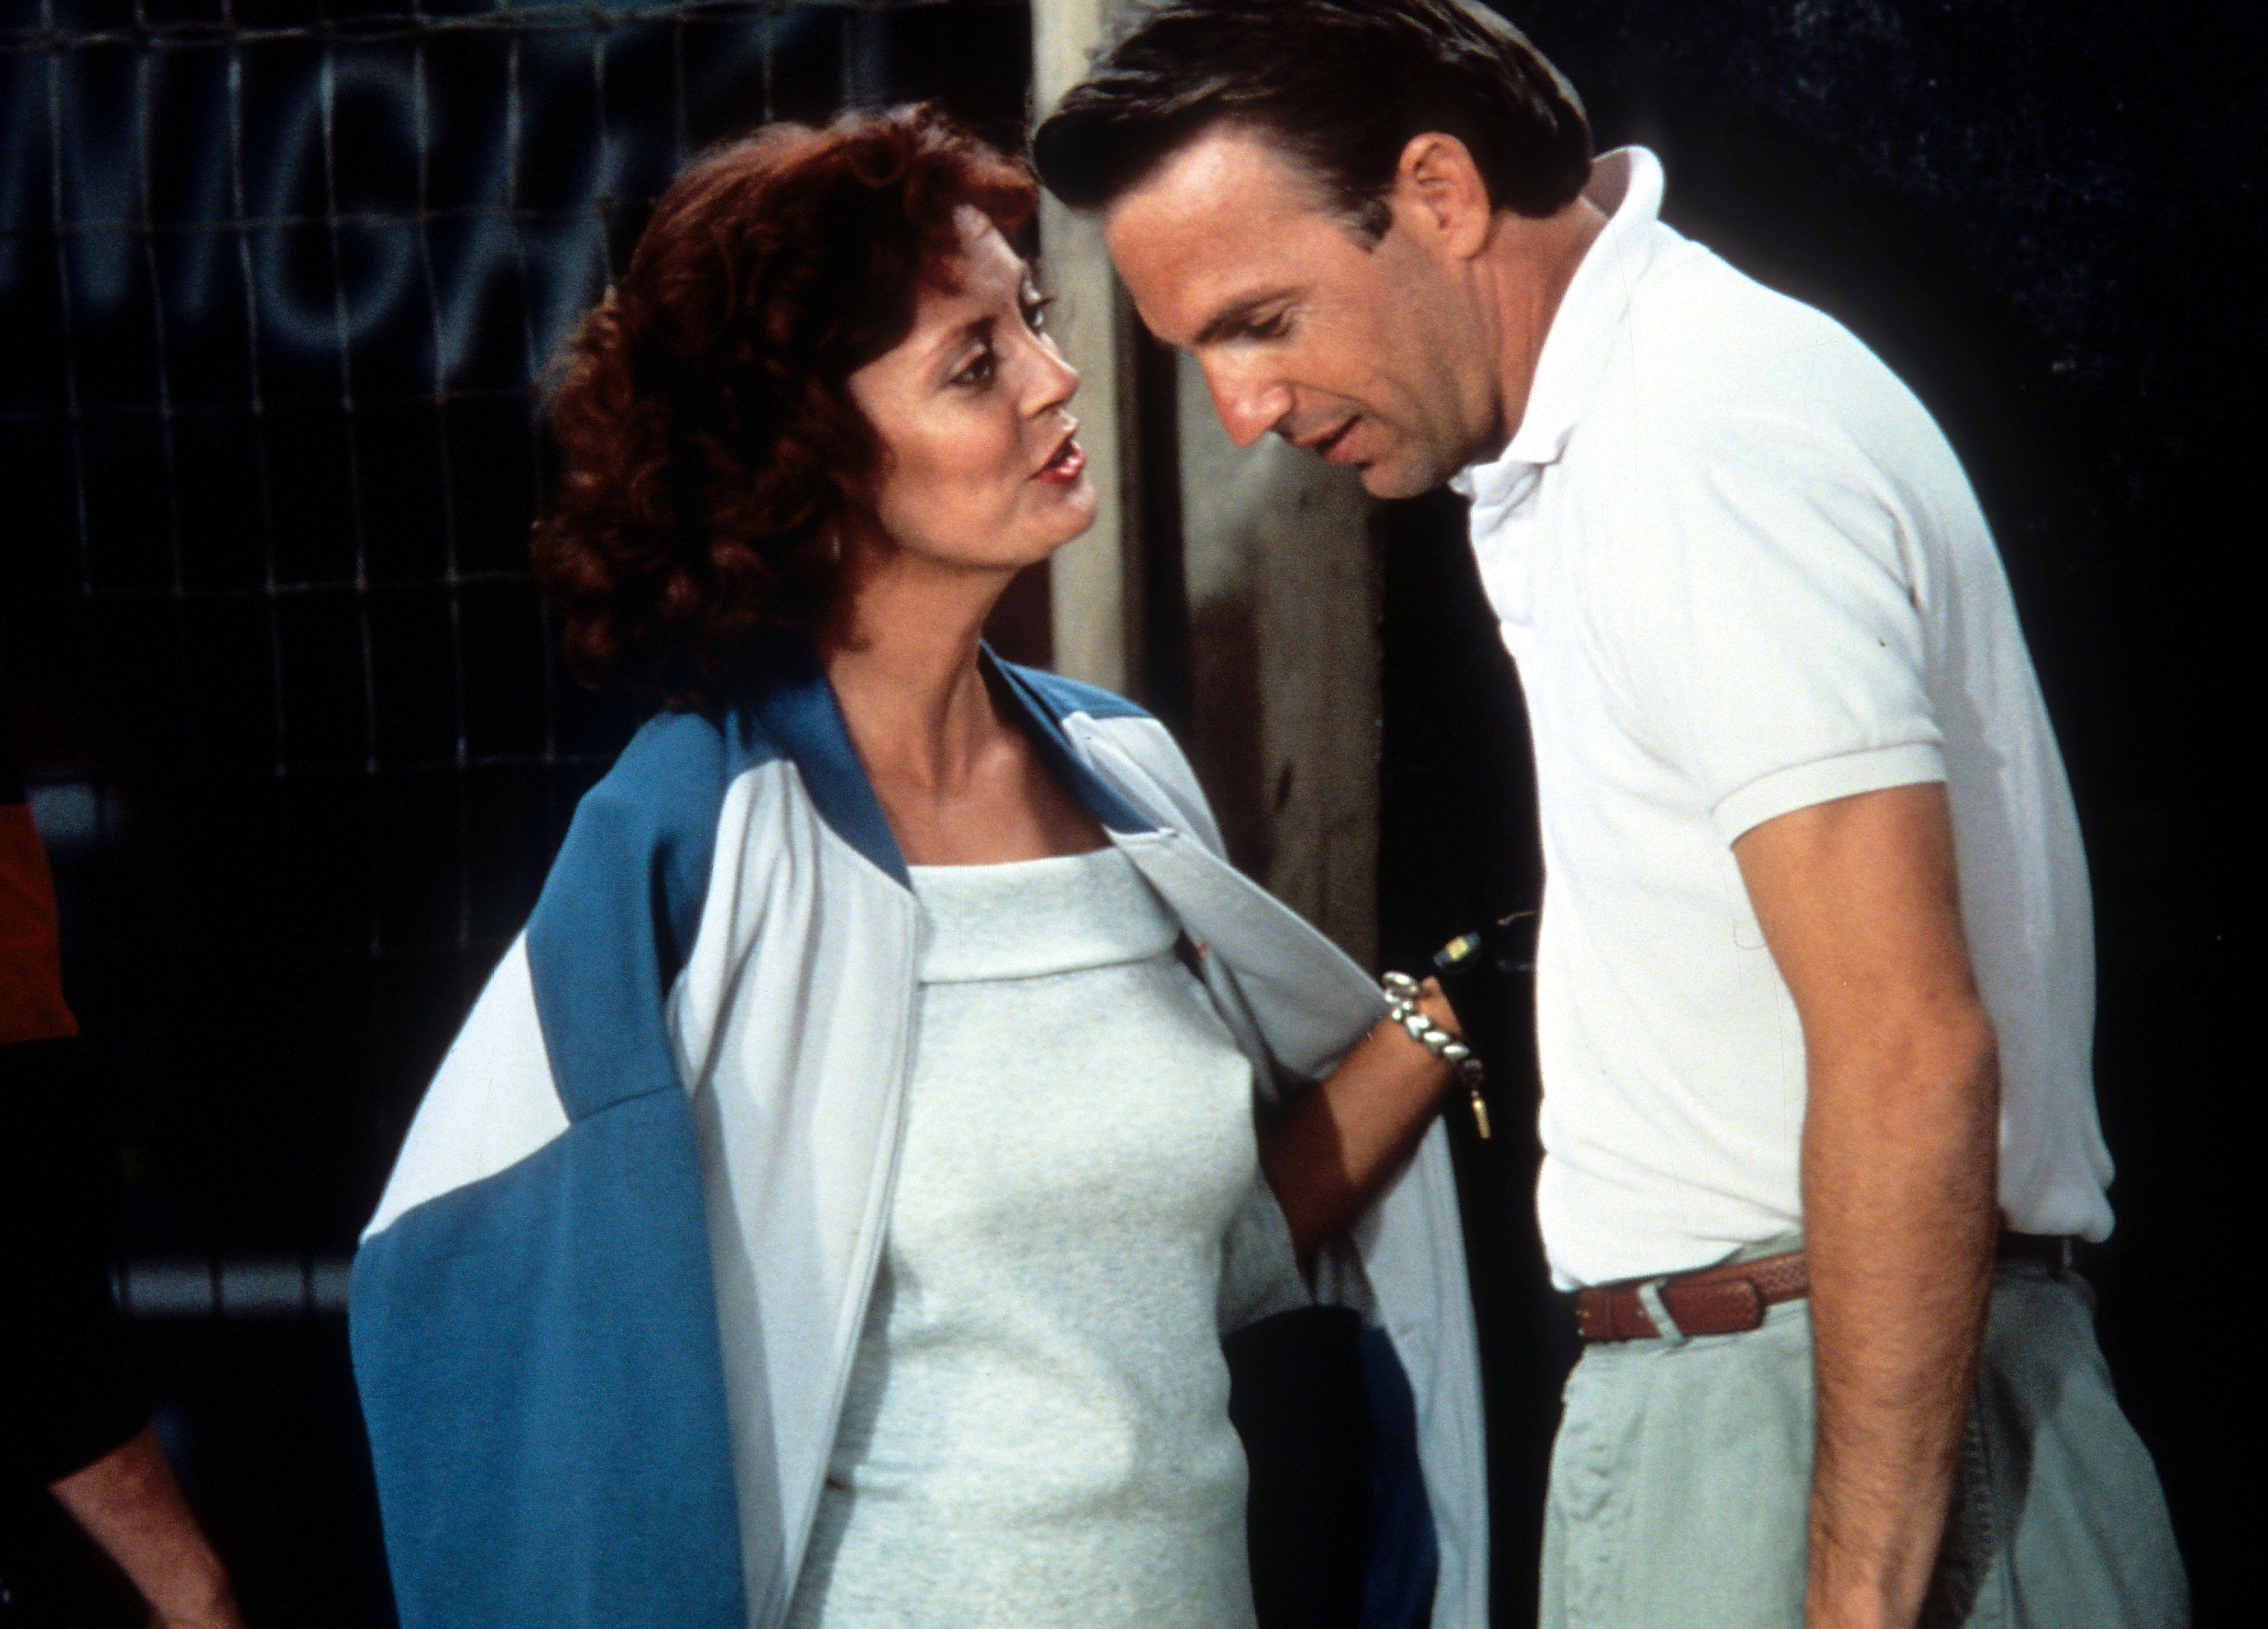 Kevin Costner and Susan Sarandon in a scene from the film 'Bull Durham', 1988. (Photo by The Mount Company/Getty Images)